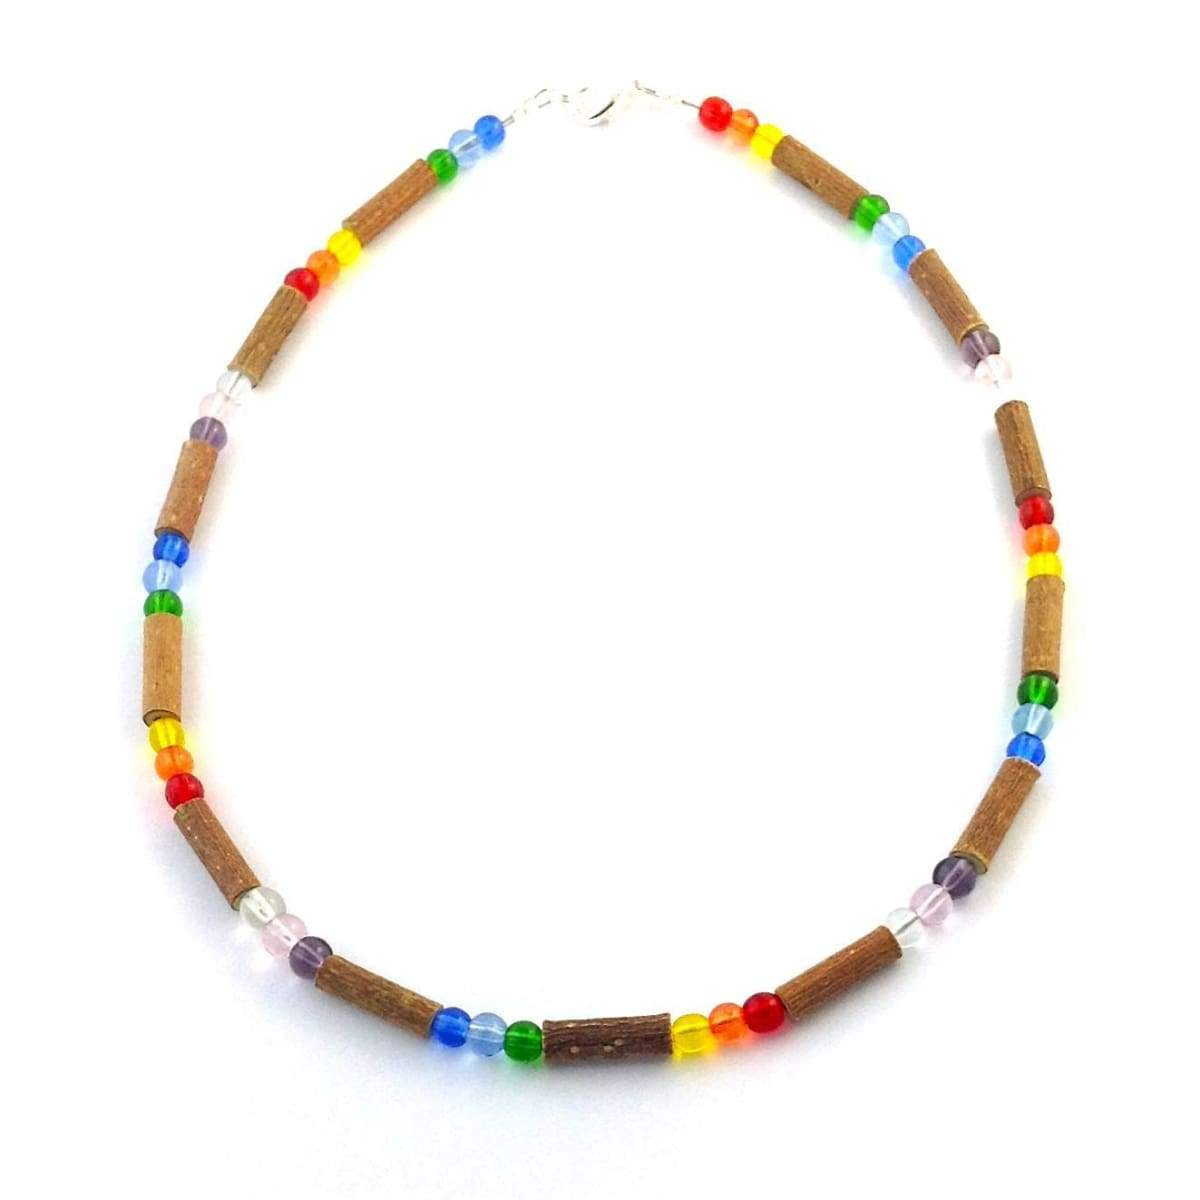 Hazelwood Rainbow - 11 Necklace - Lobster Claw Clasp - Hazelwood Jewelry